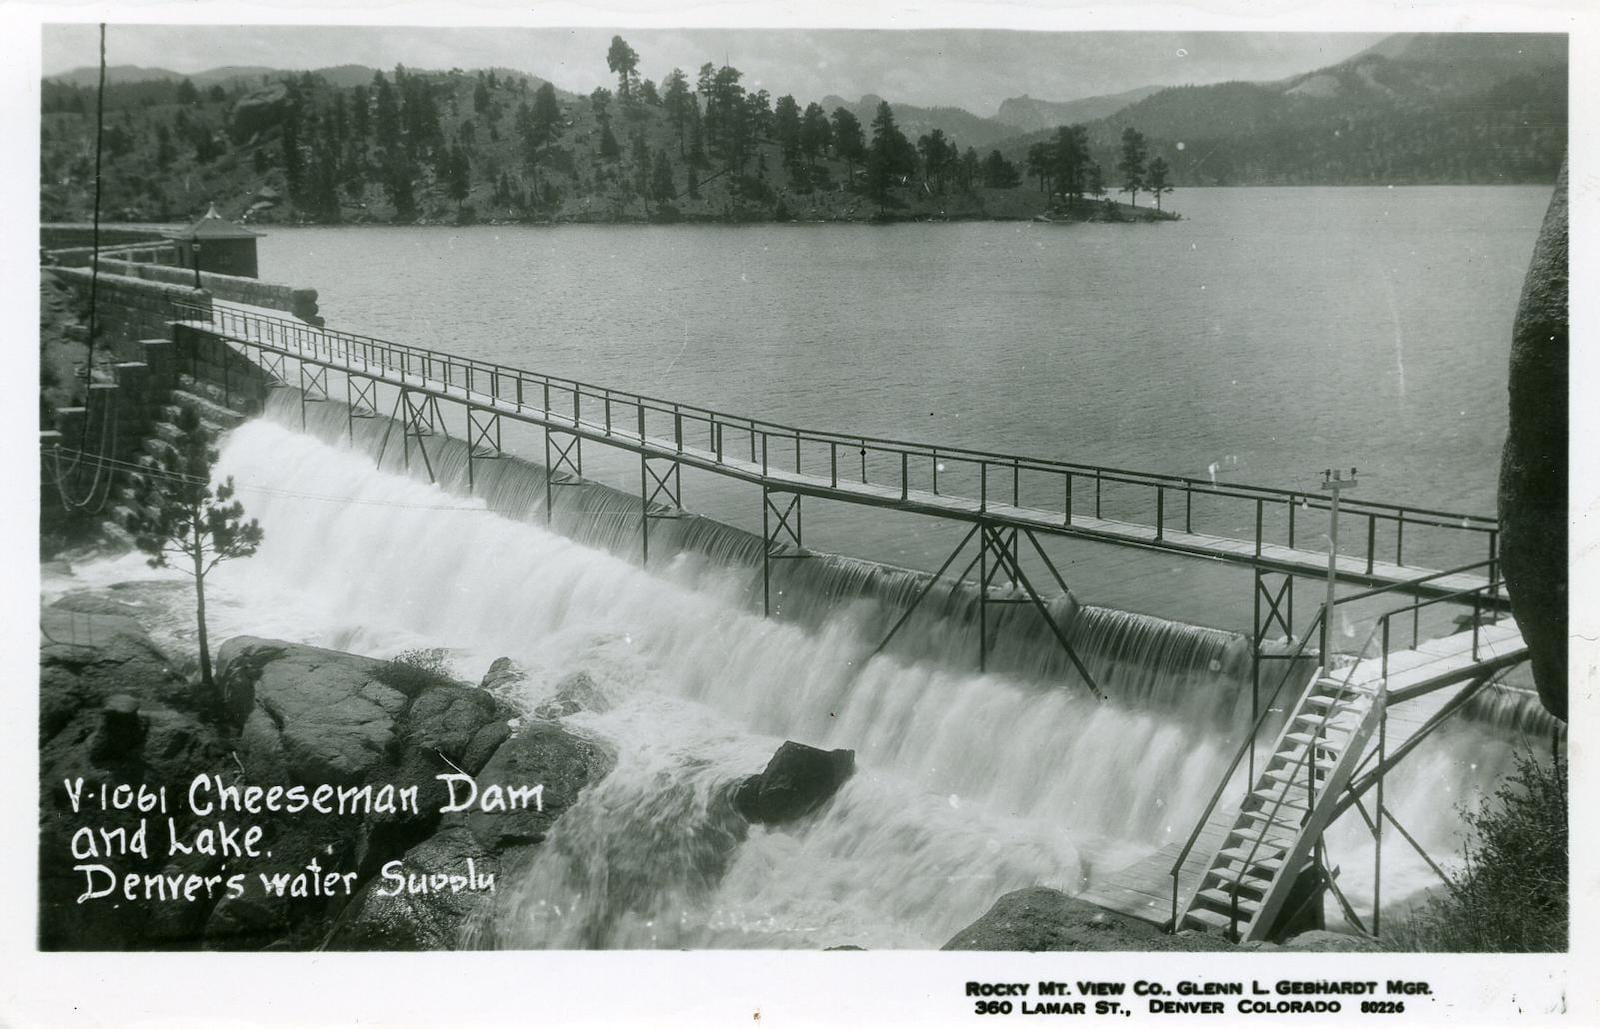 Cheesman Lake and Dam in Deckers, CO, circa 1926